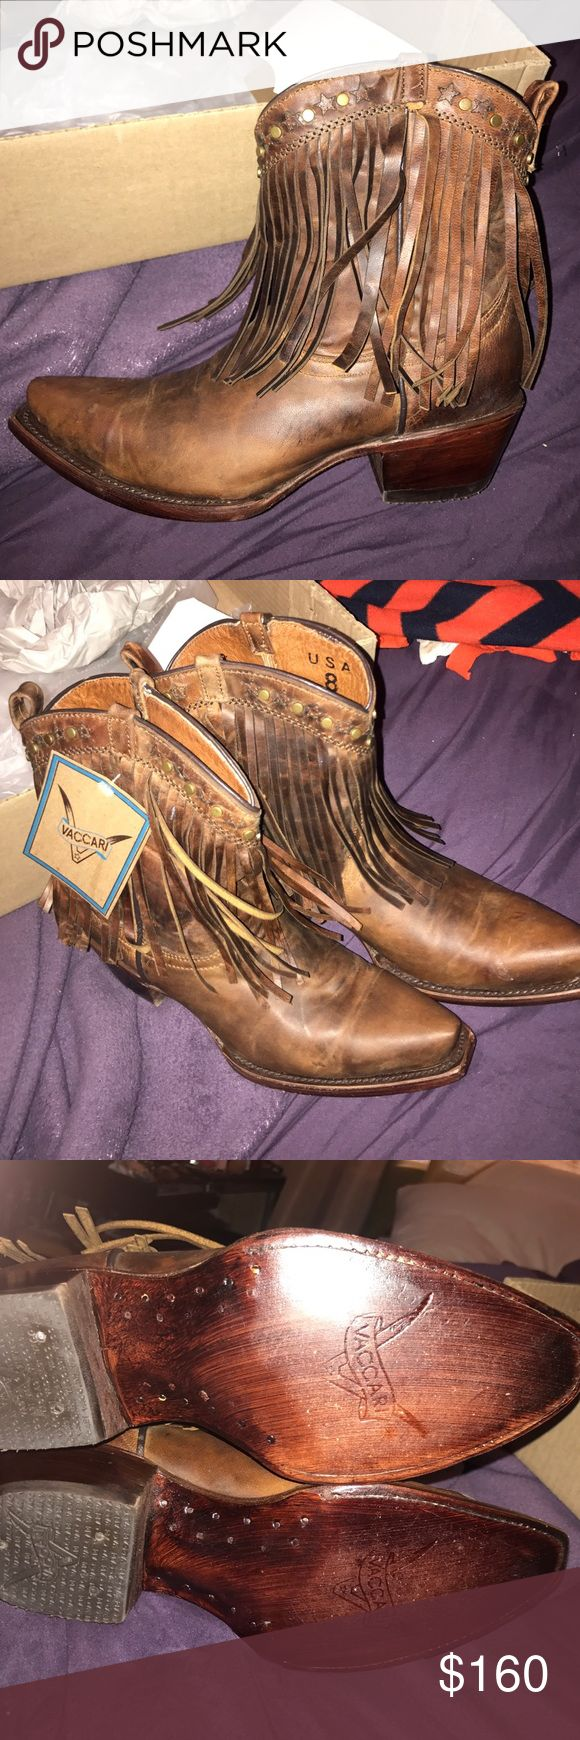 Fringe ankle cowboy boots! NWT never work fringe cowboy boots! I'm a size 8.5 normally but these fit fine! :) selling because I haven't worn them and don't know if I will! Any questions please ask! ❤ Shoes Ankle Boots & Booties